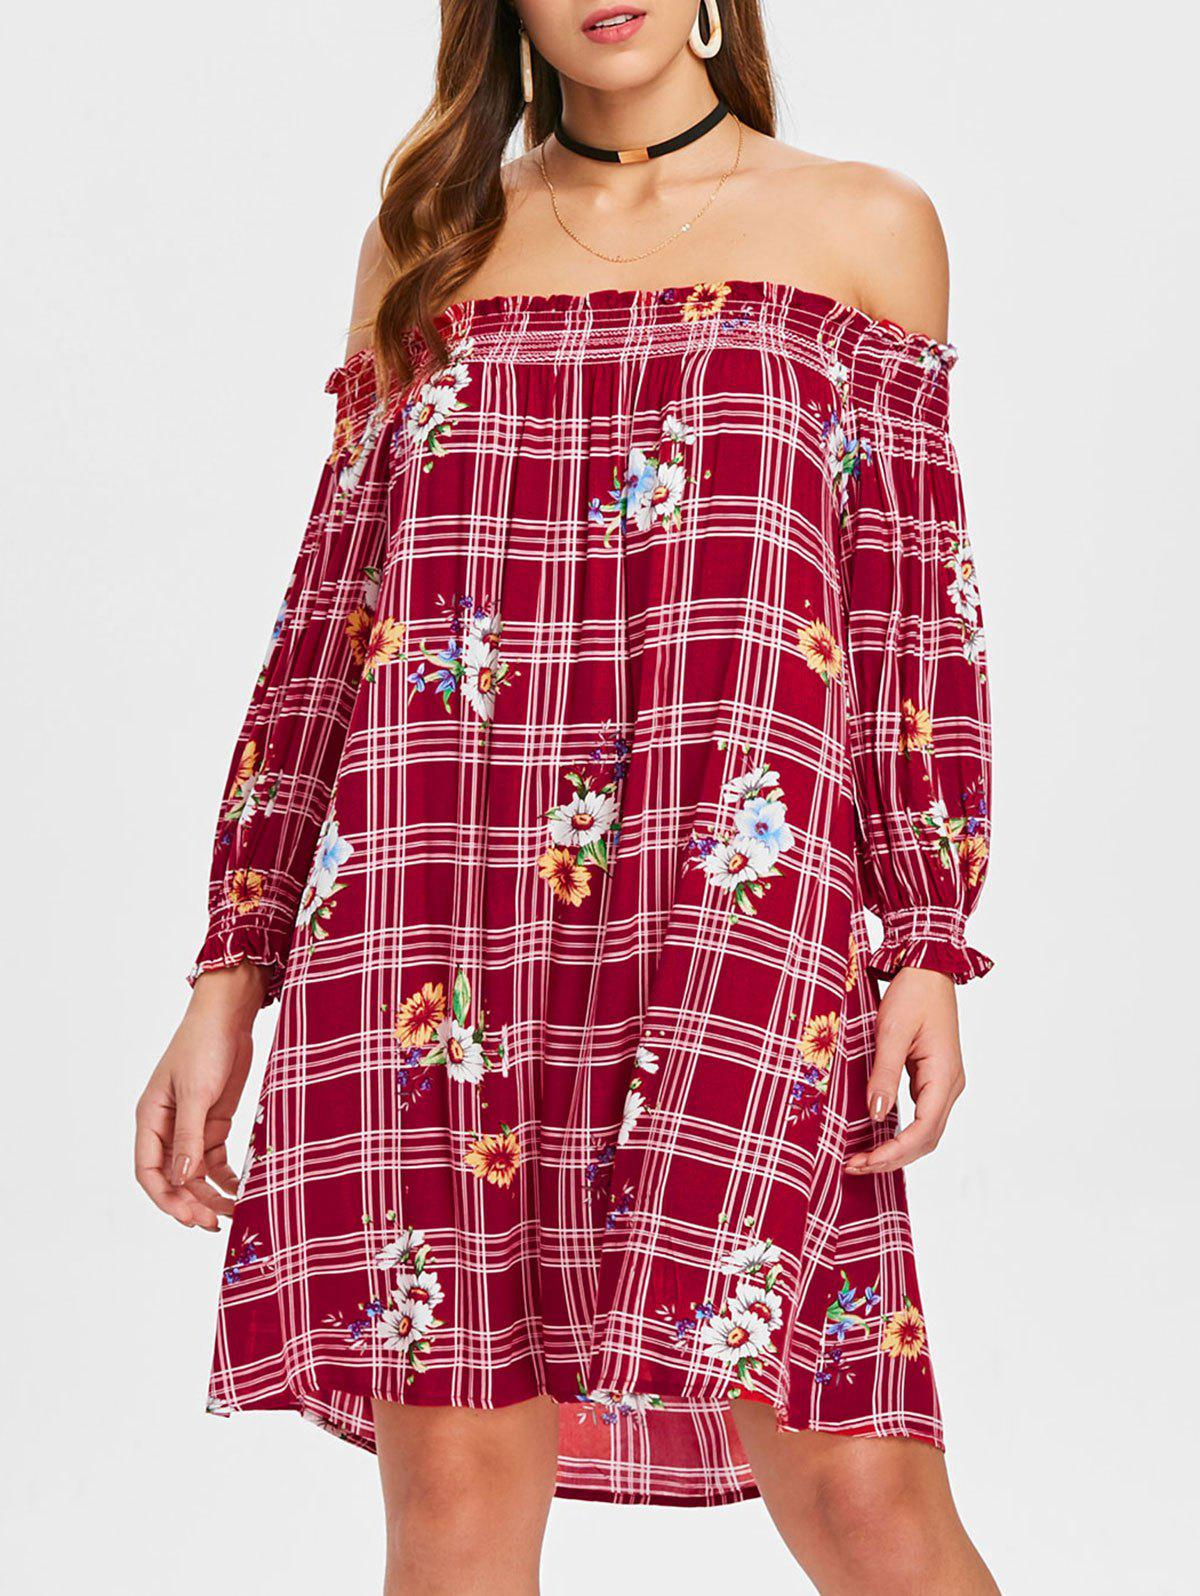 Floral Plaid Long Sleeve Open Shoulder Dress - multicolor M